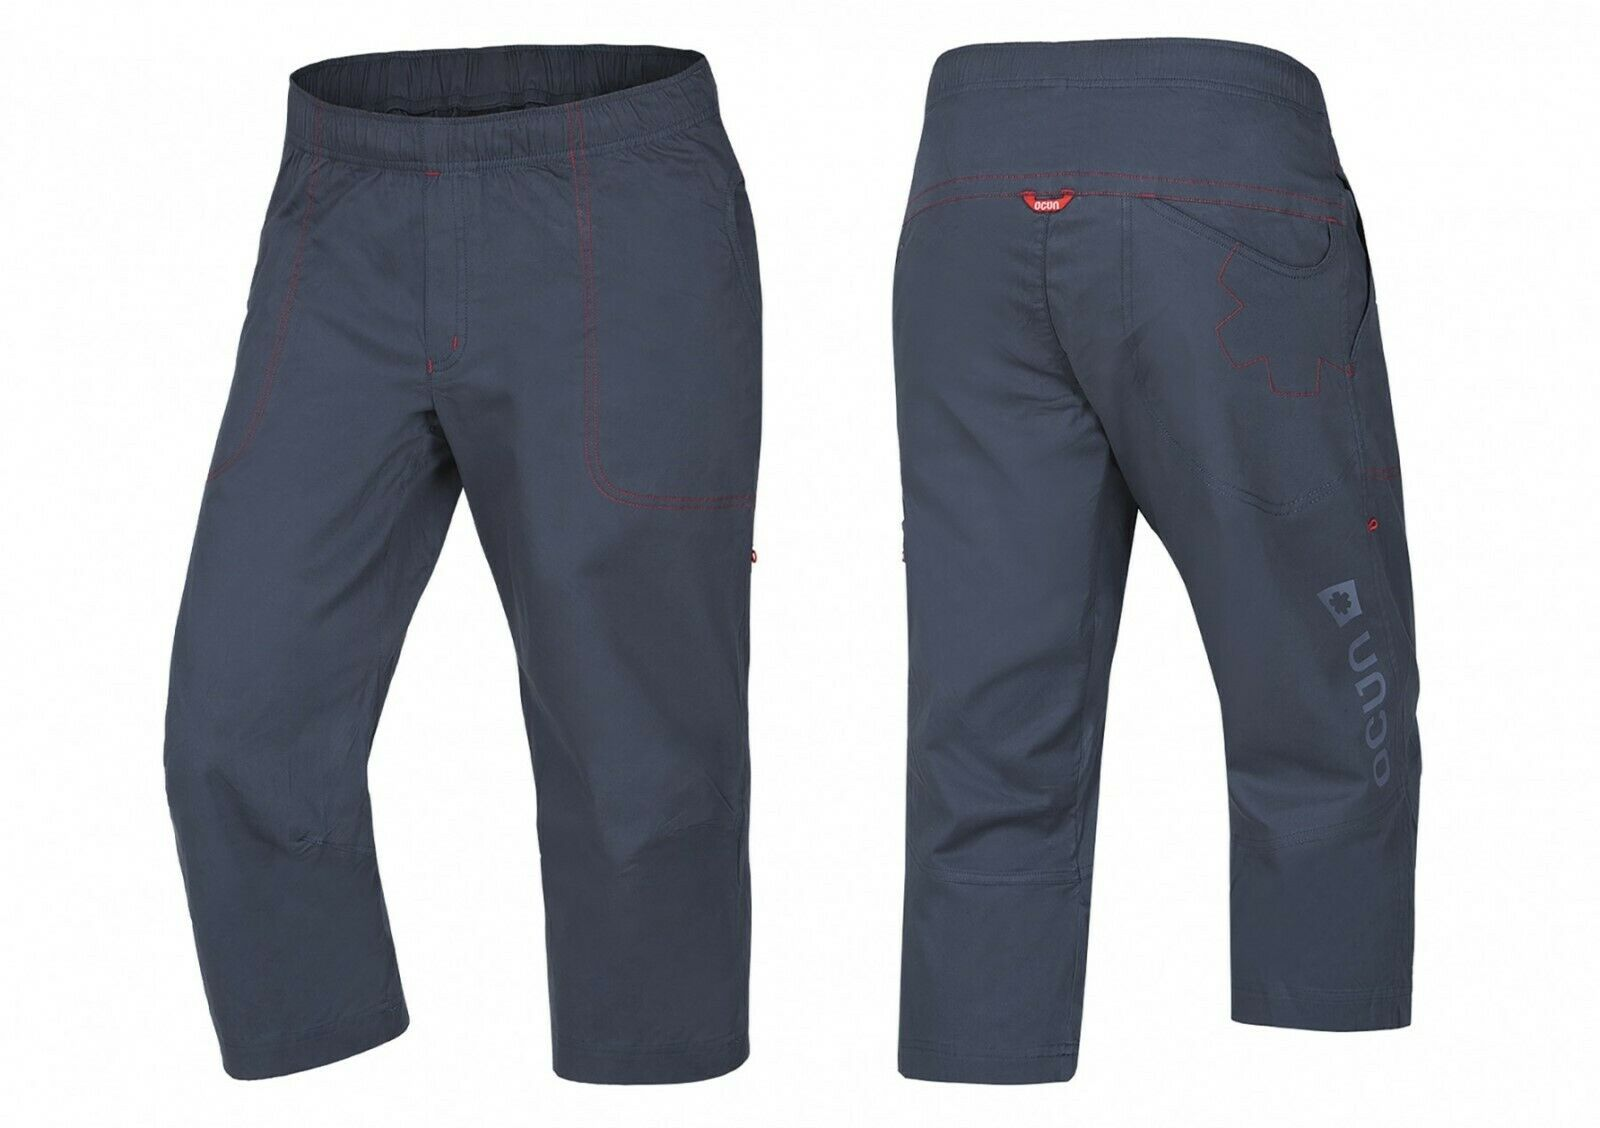 Ocun Jaws 3 4 Pant Men Slate blueee Climbing Pants for Men in 3 4-länge